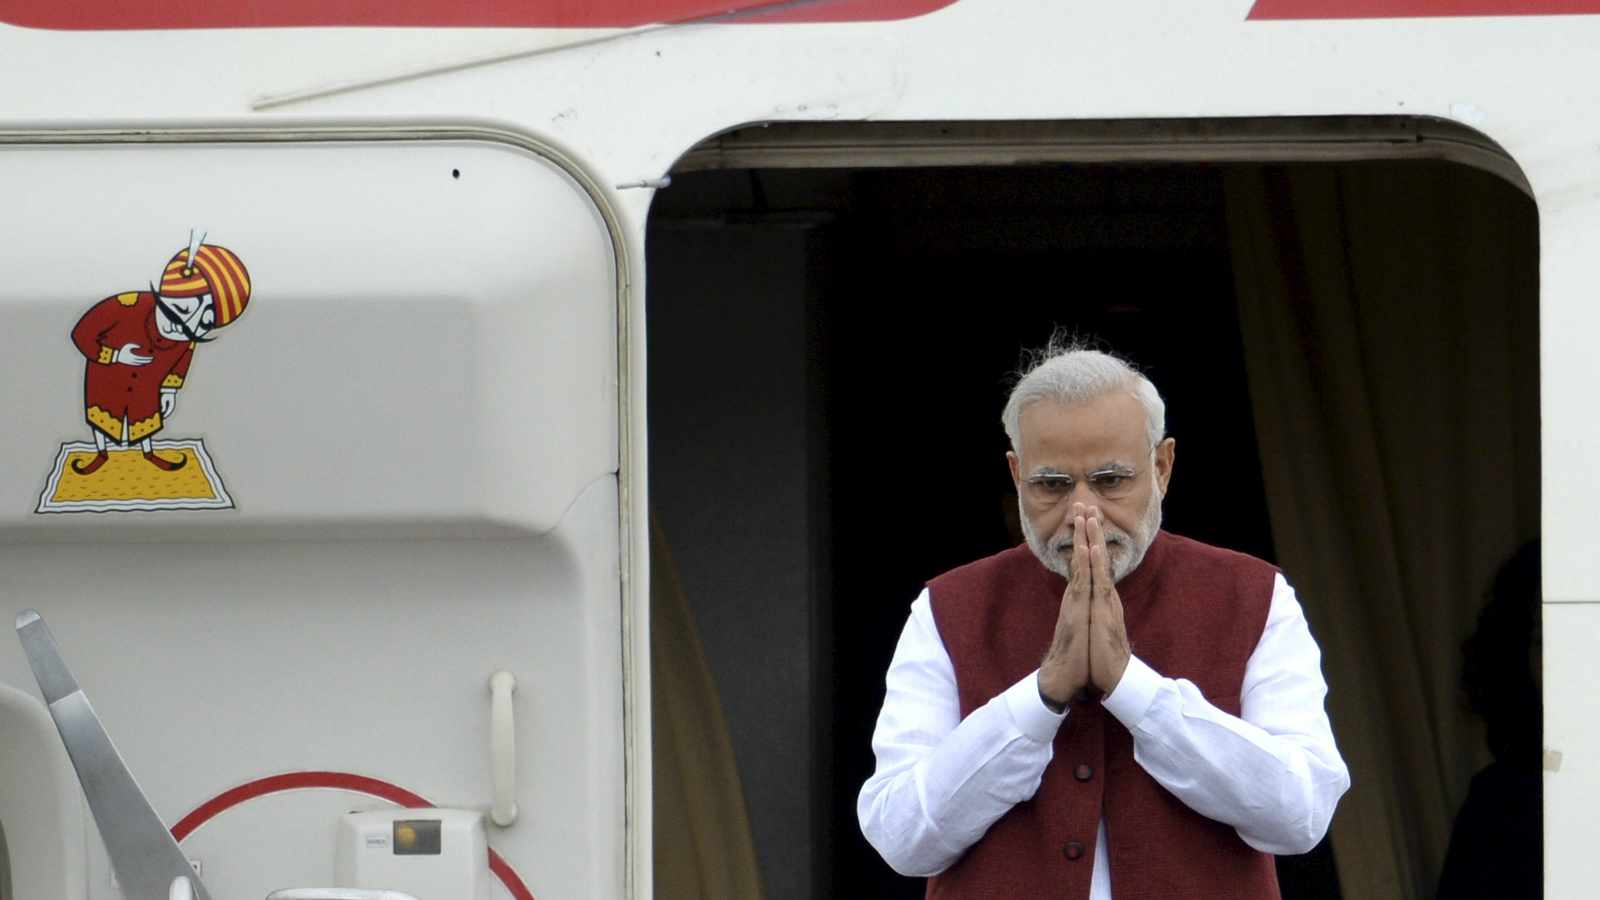 Indian Prime Minister Narendra Modi greets welcomers upon his arrival before attending the BRICS and the Shanghai Cooperation Organization (SCO) summits in Ufa, Russia, July 8, 2015. REUTERS/BRICS/SCO Photohost/RIA Novosti ATTENTION EDITORS - THIS IMAGE HAS BEEN SUPPLIED BY A THIRD PARTY. IT IS DISTRIBUTED, EXACTLY AS RECEIVED BY REUTERS, AS A SERVICE TO CLIENTS.